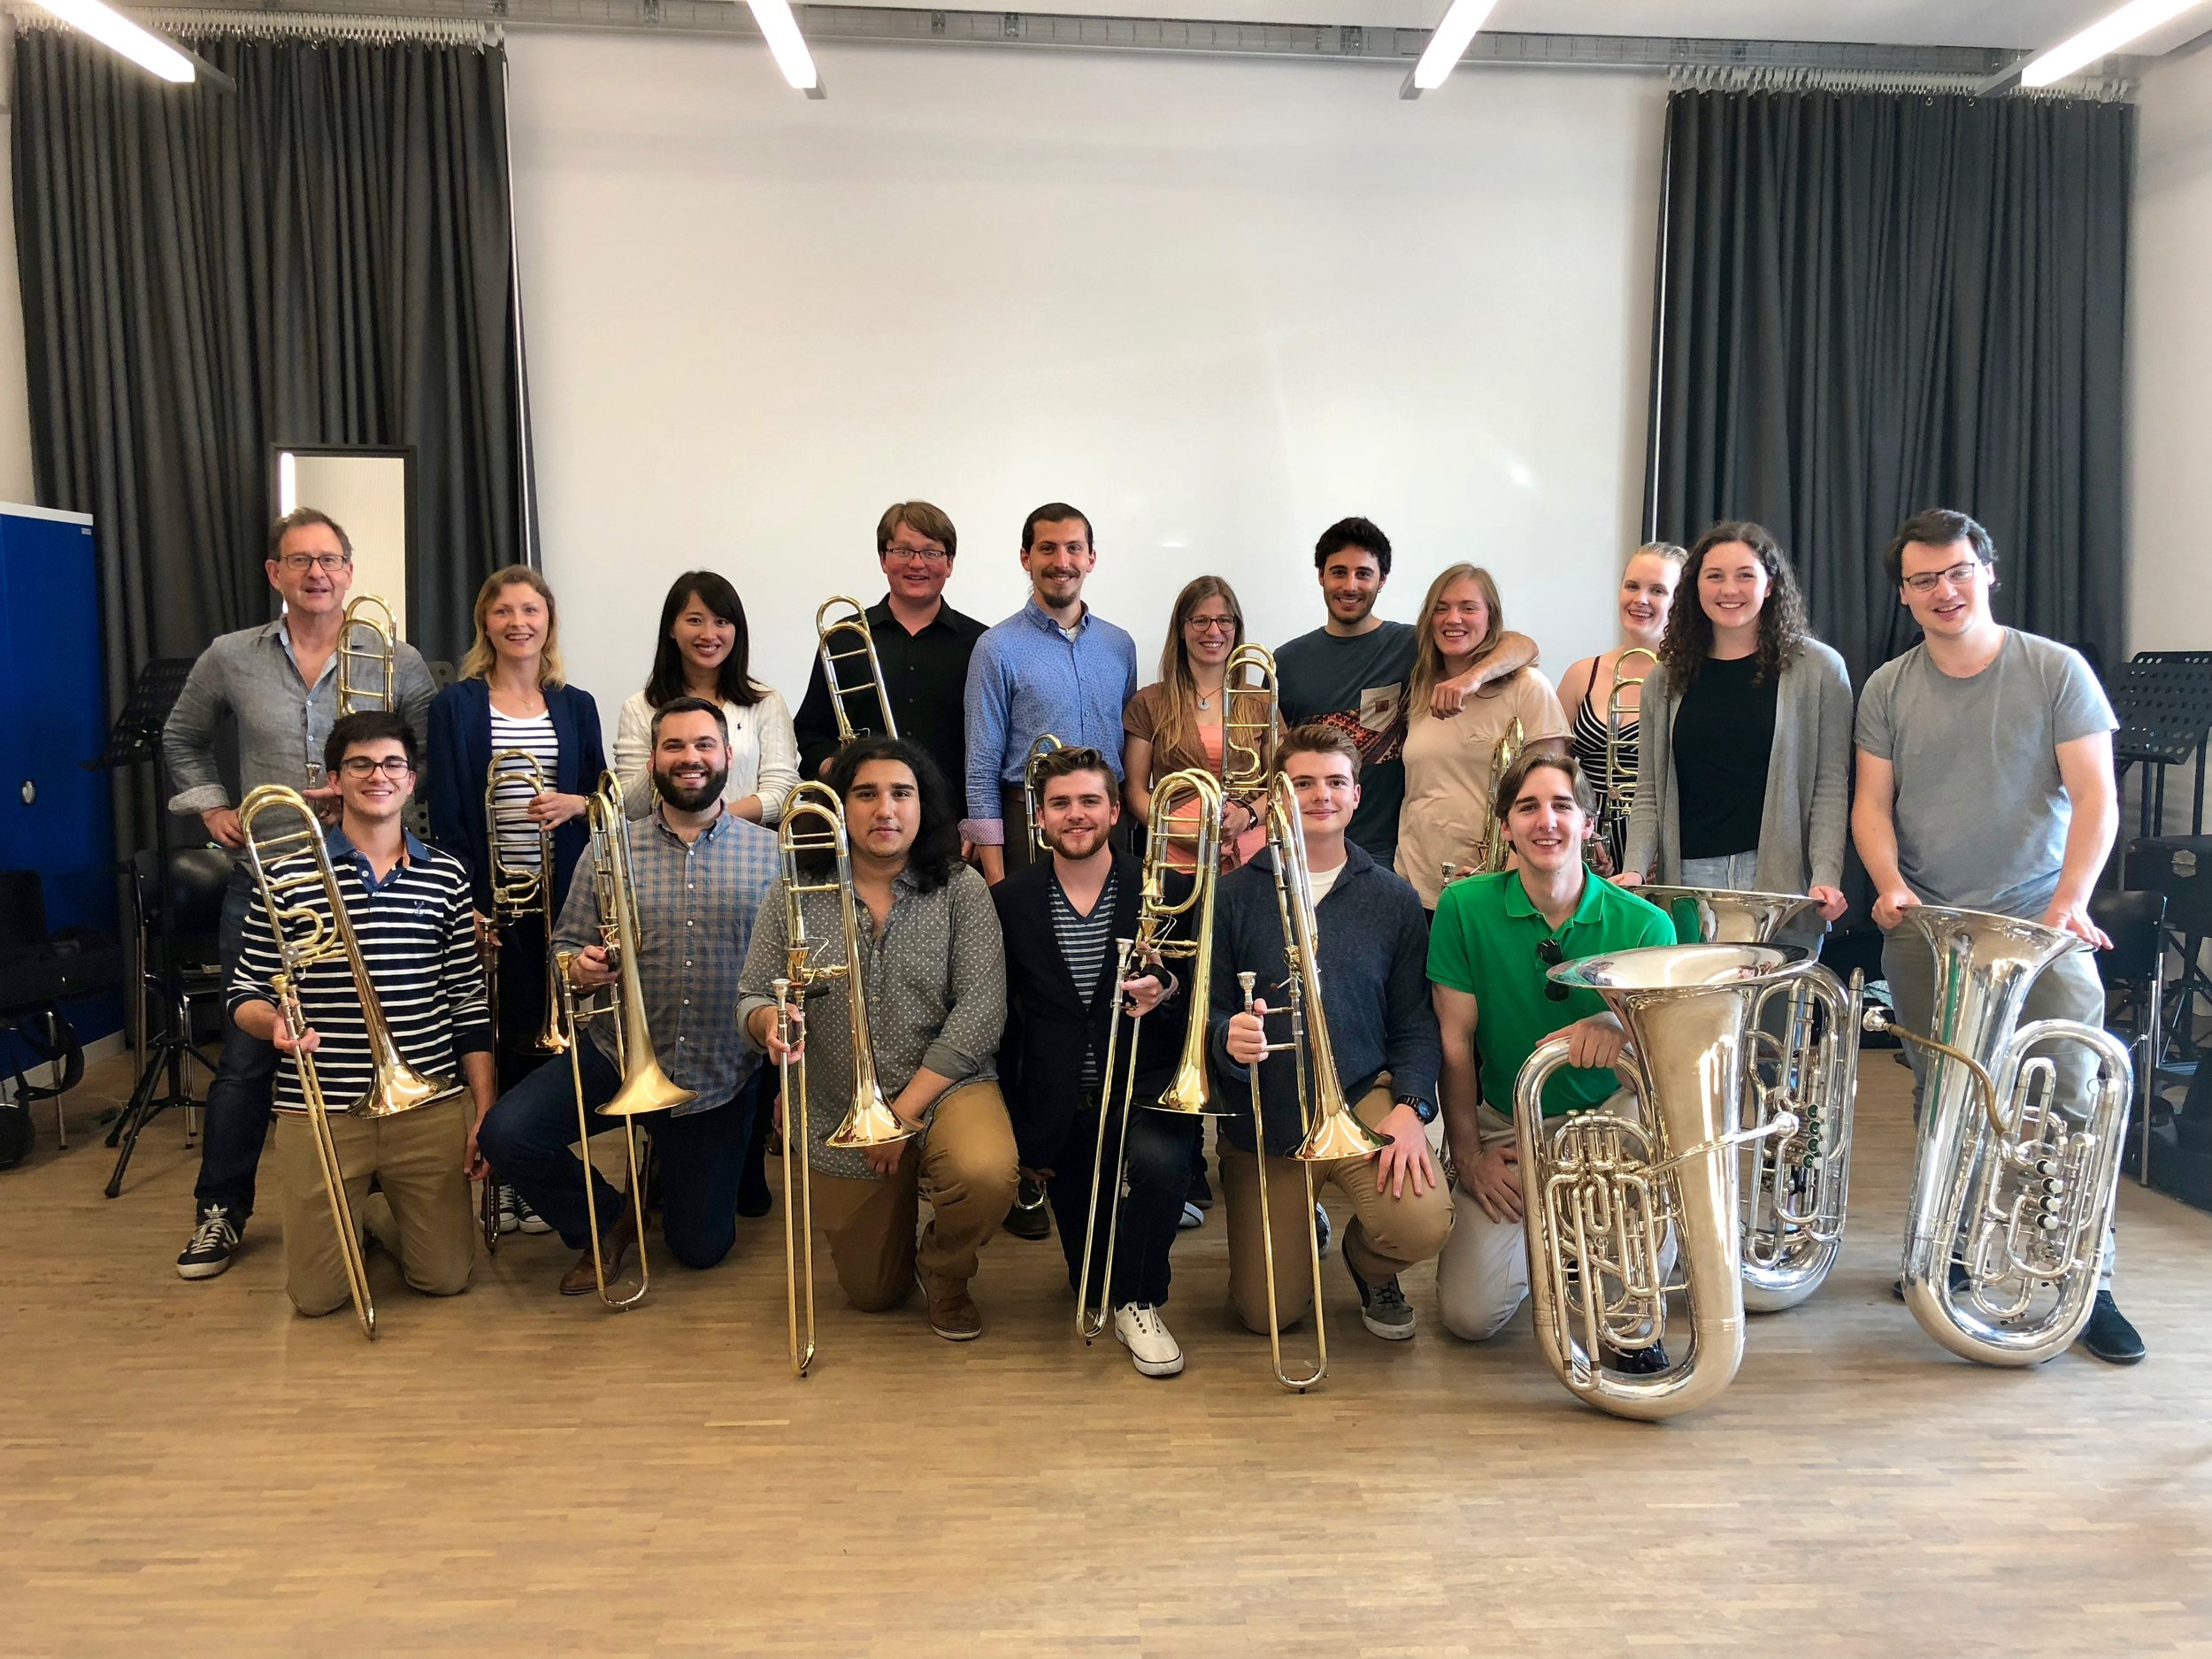 With the trombone students of the Hochschule Der Kunst in Bern!